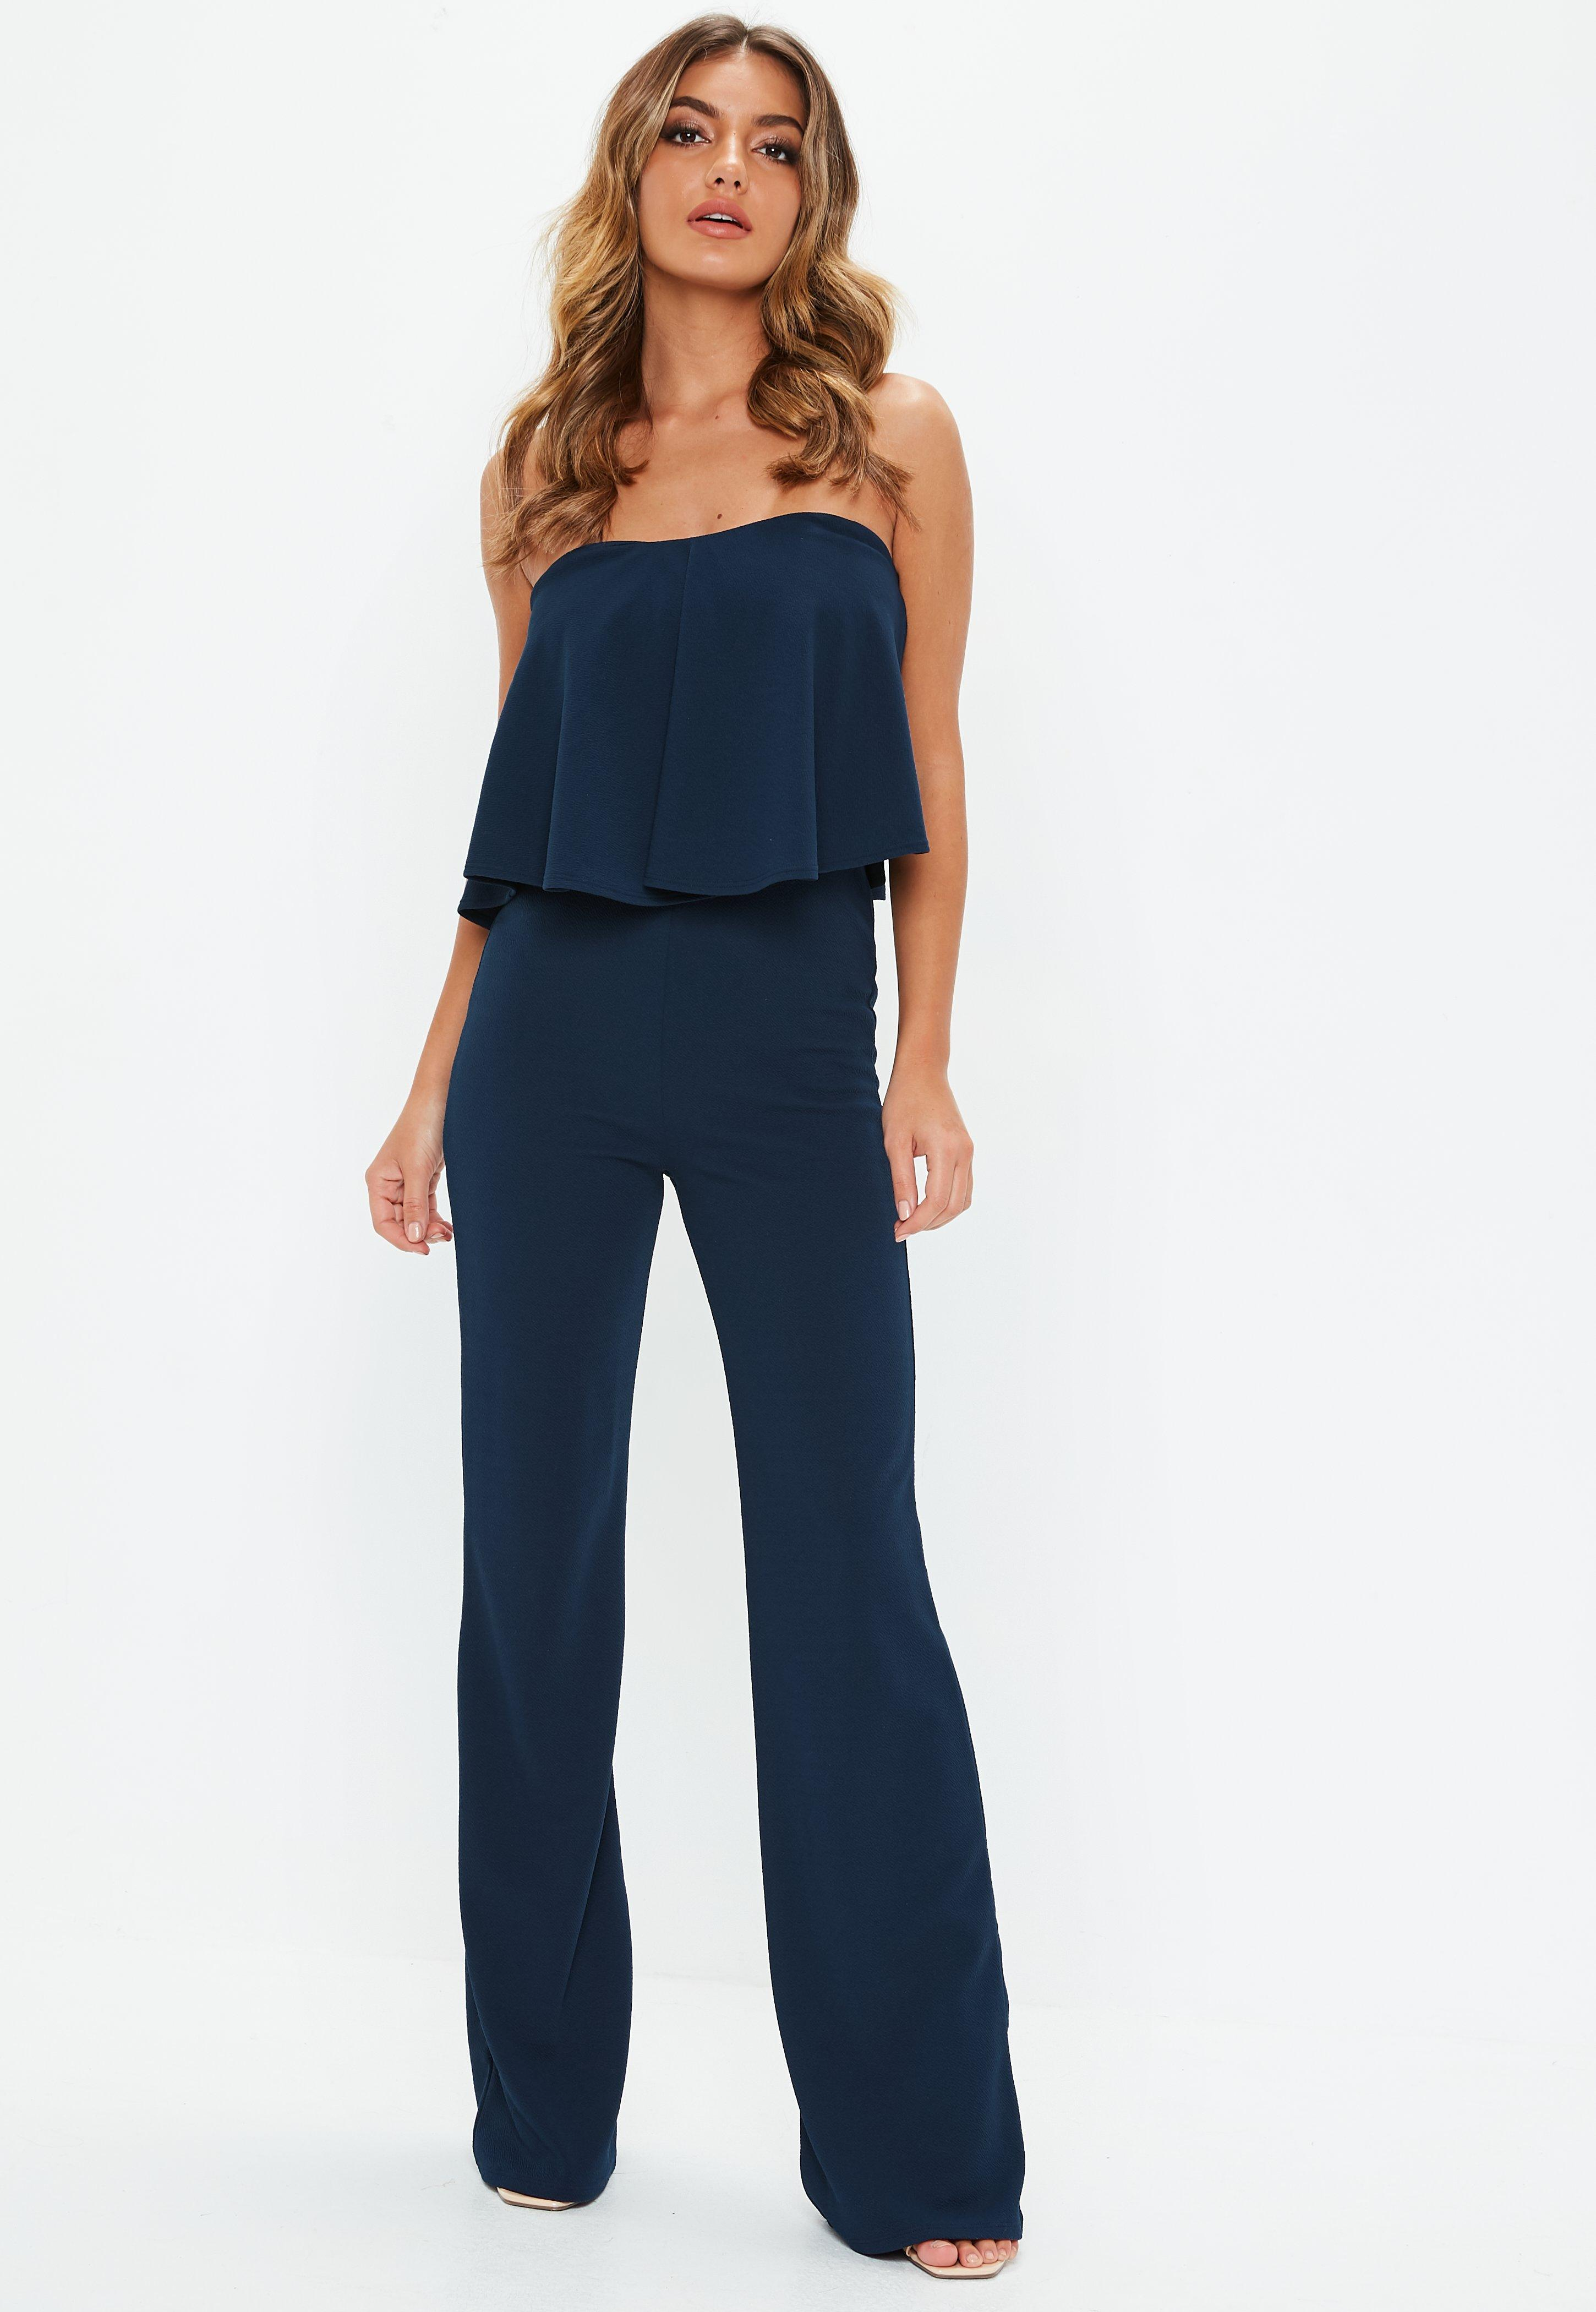 0011f977583 Lyst - Missguided Tall Navy Bandeau Frill Wide Leg Jumpsuit in Blue